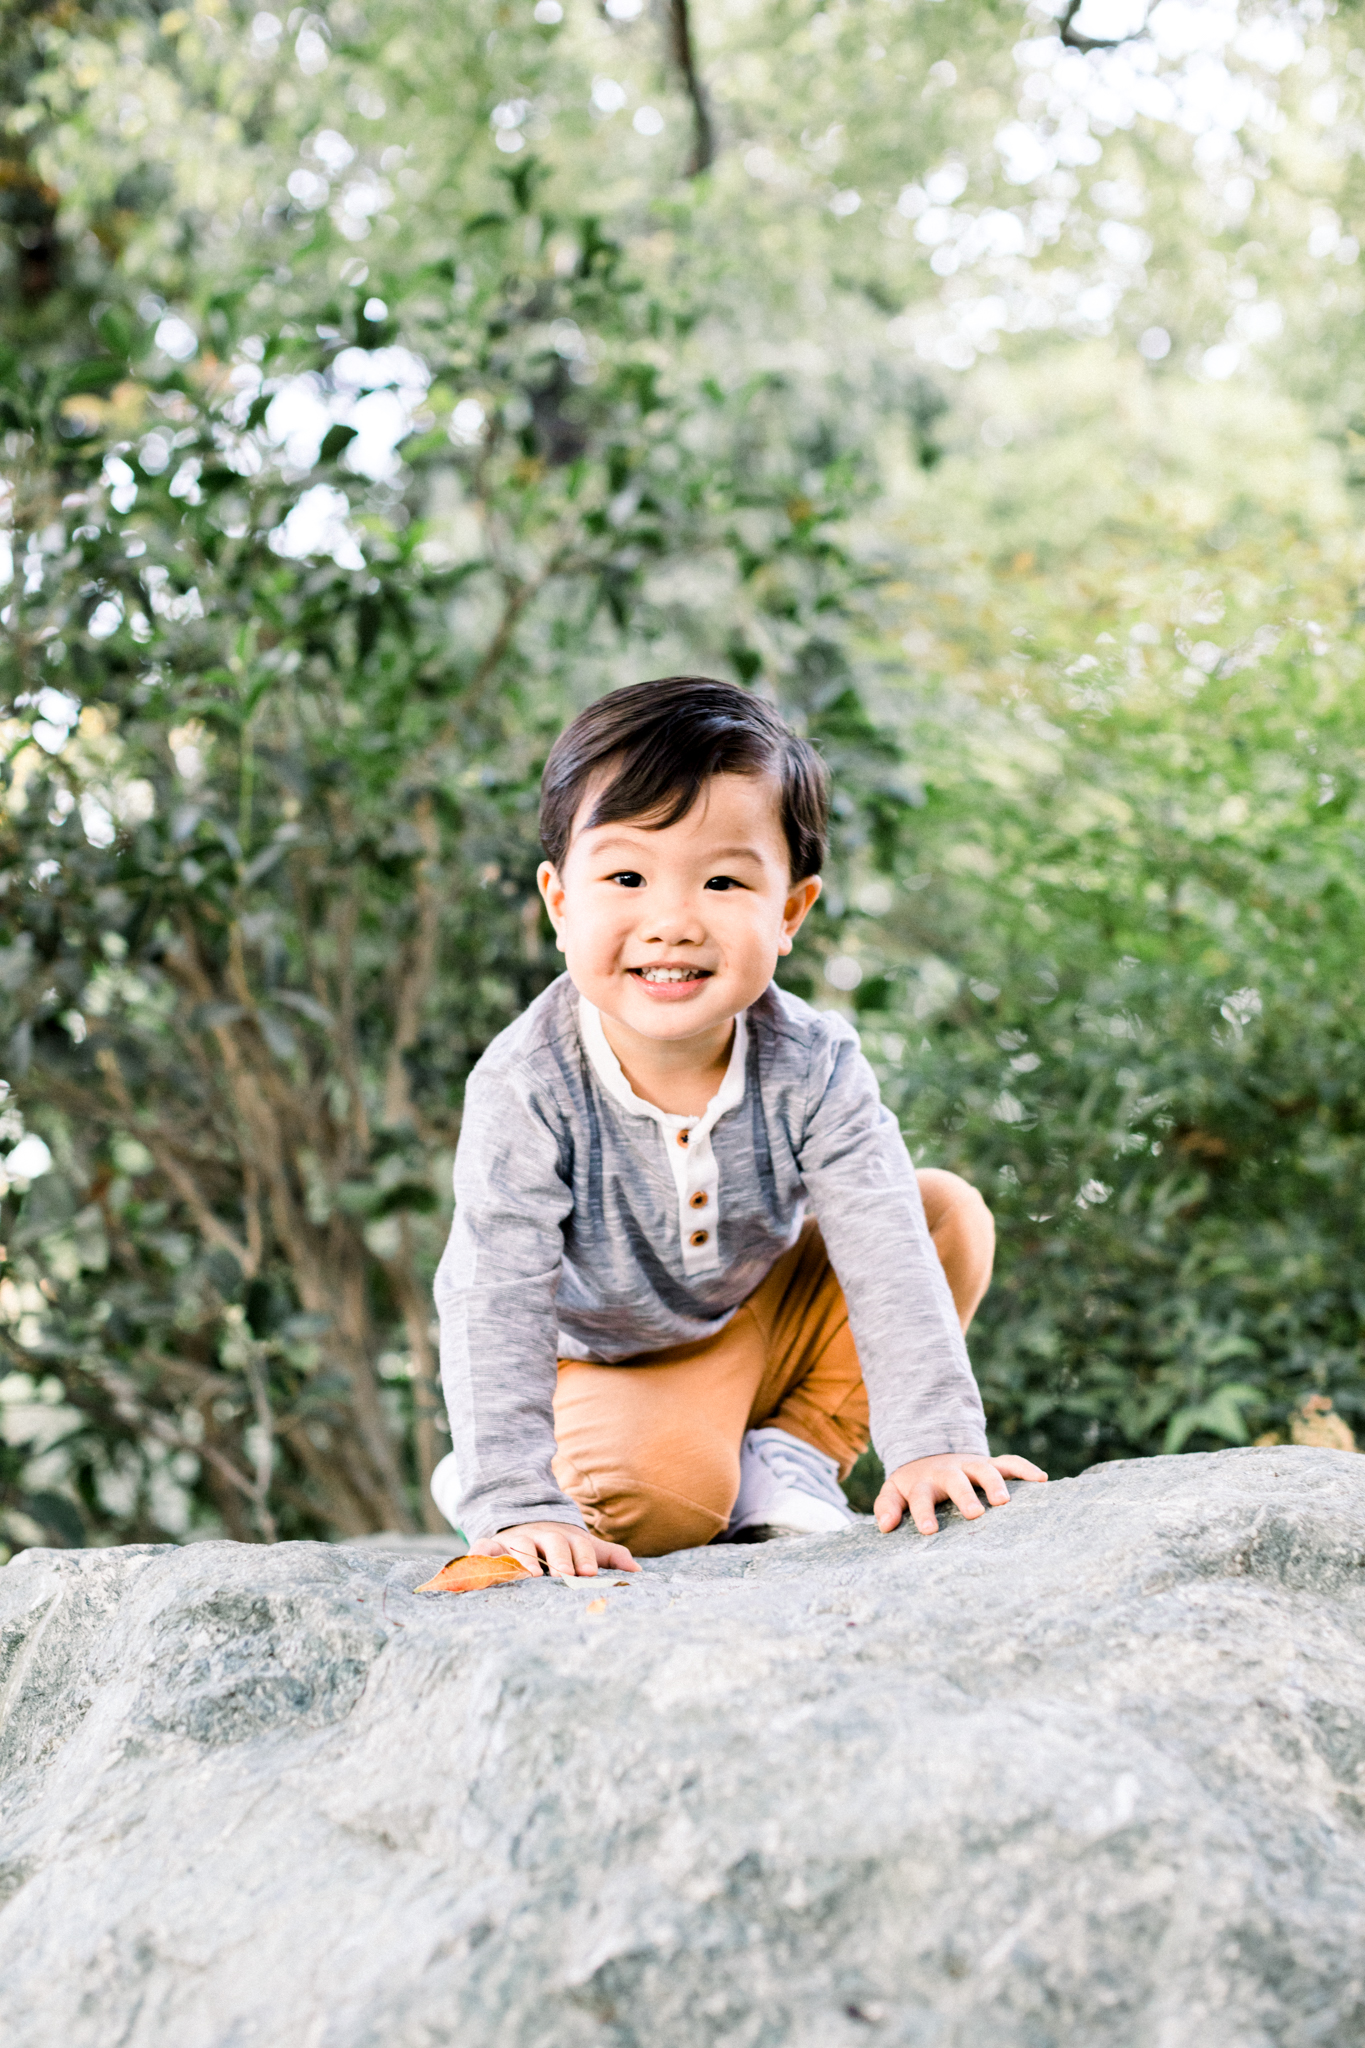 A little boy posing and smiling on top of a rock.